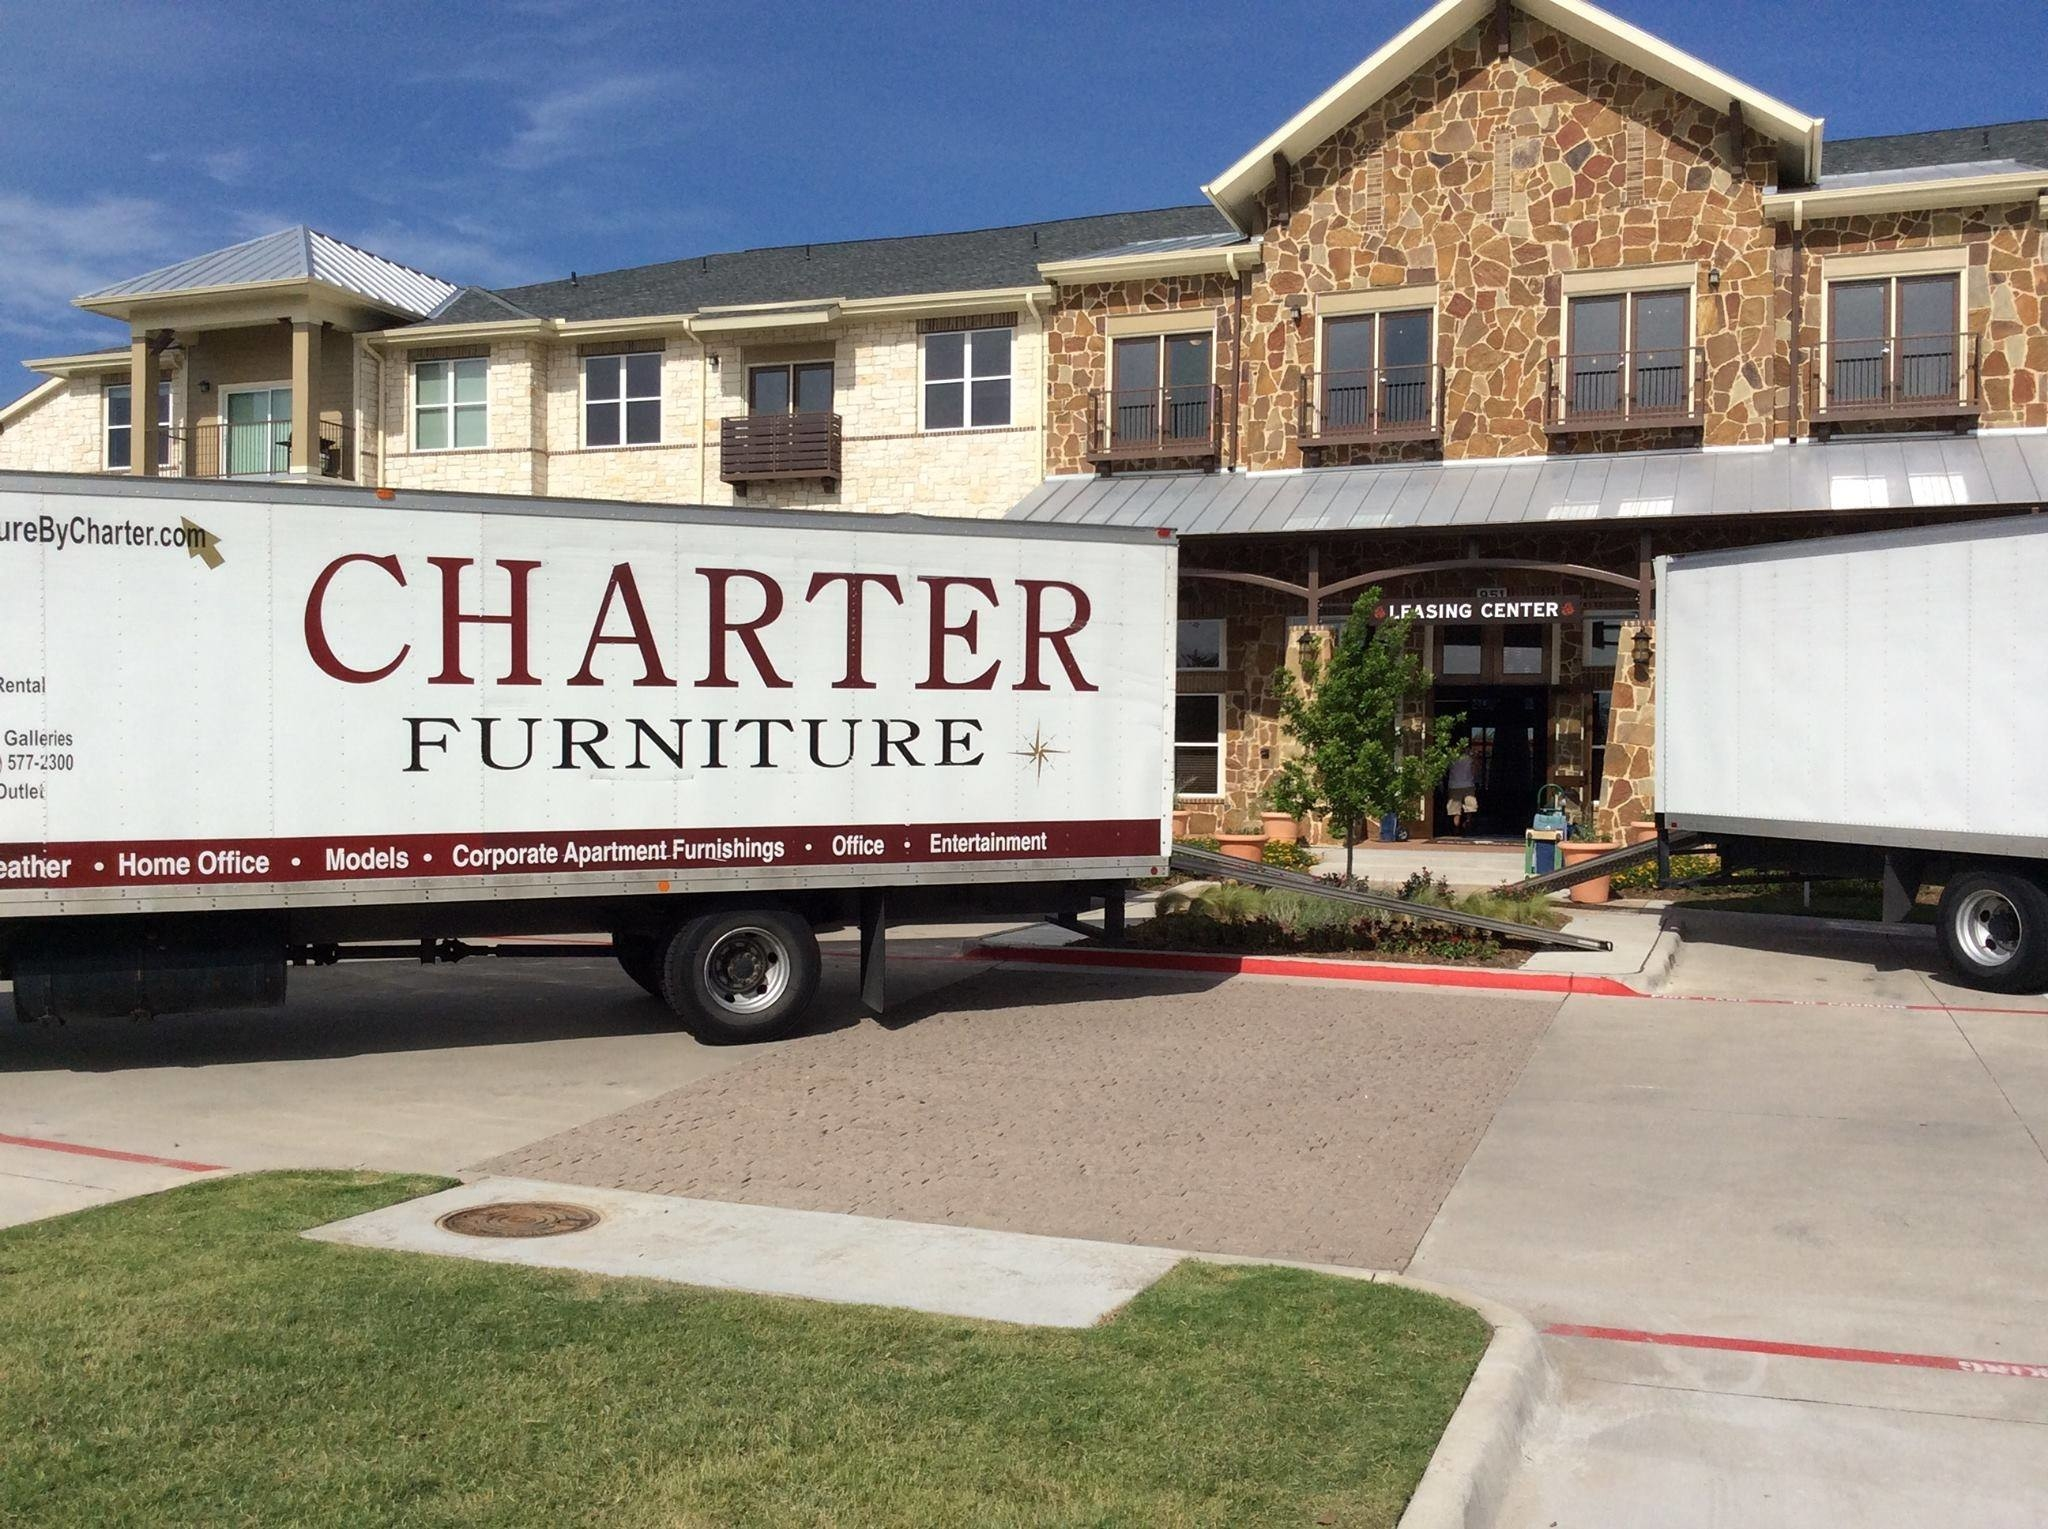 Charter furniture rental addison tx company information Home mart furniture addison tx